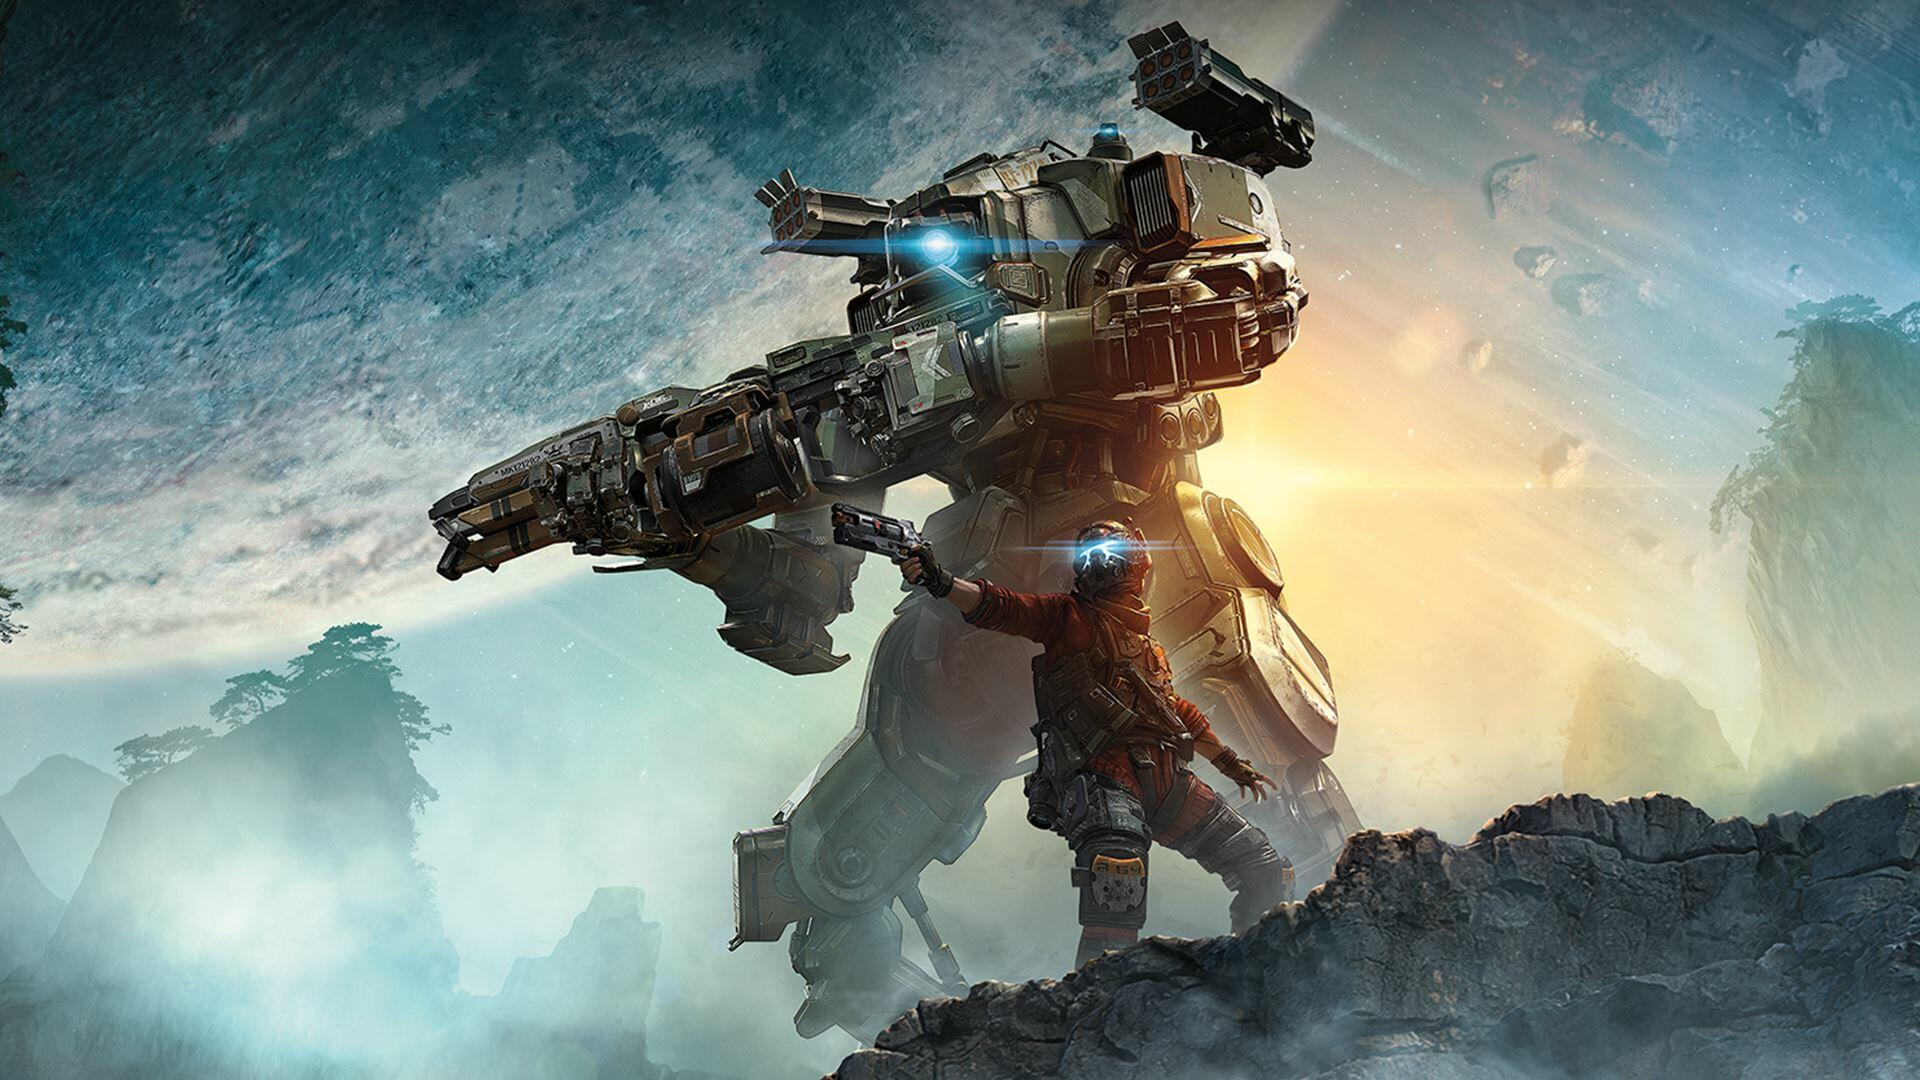 Respawn is Putting Off Plans for Future Titanfall Games to Focus on Apex Legends